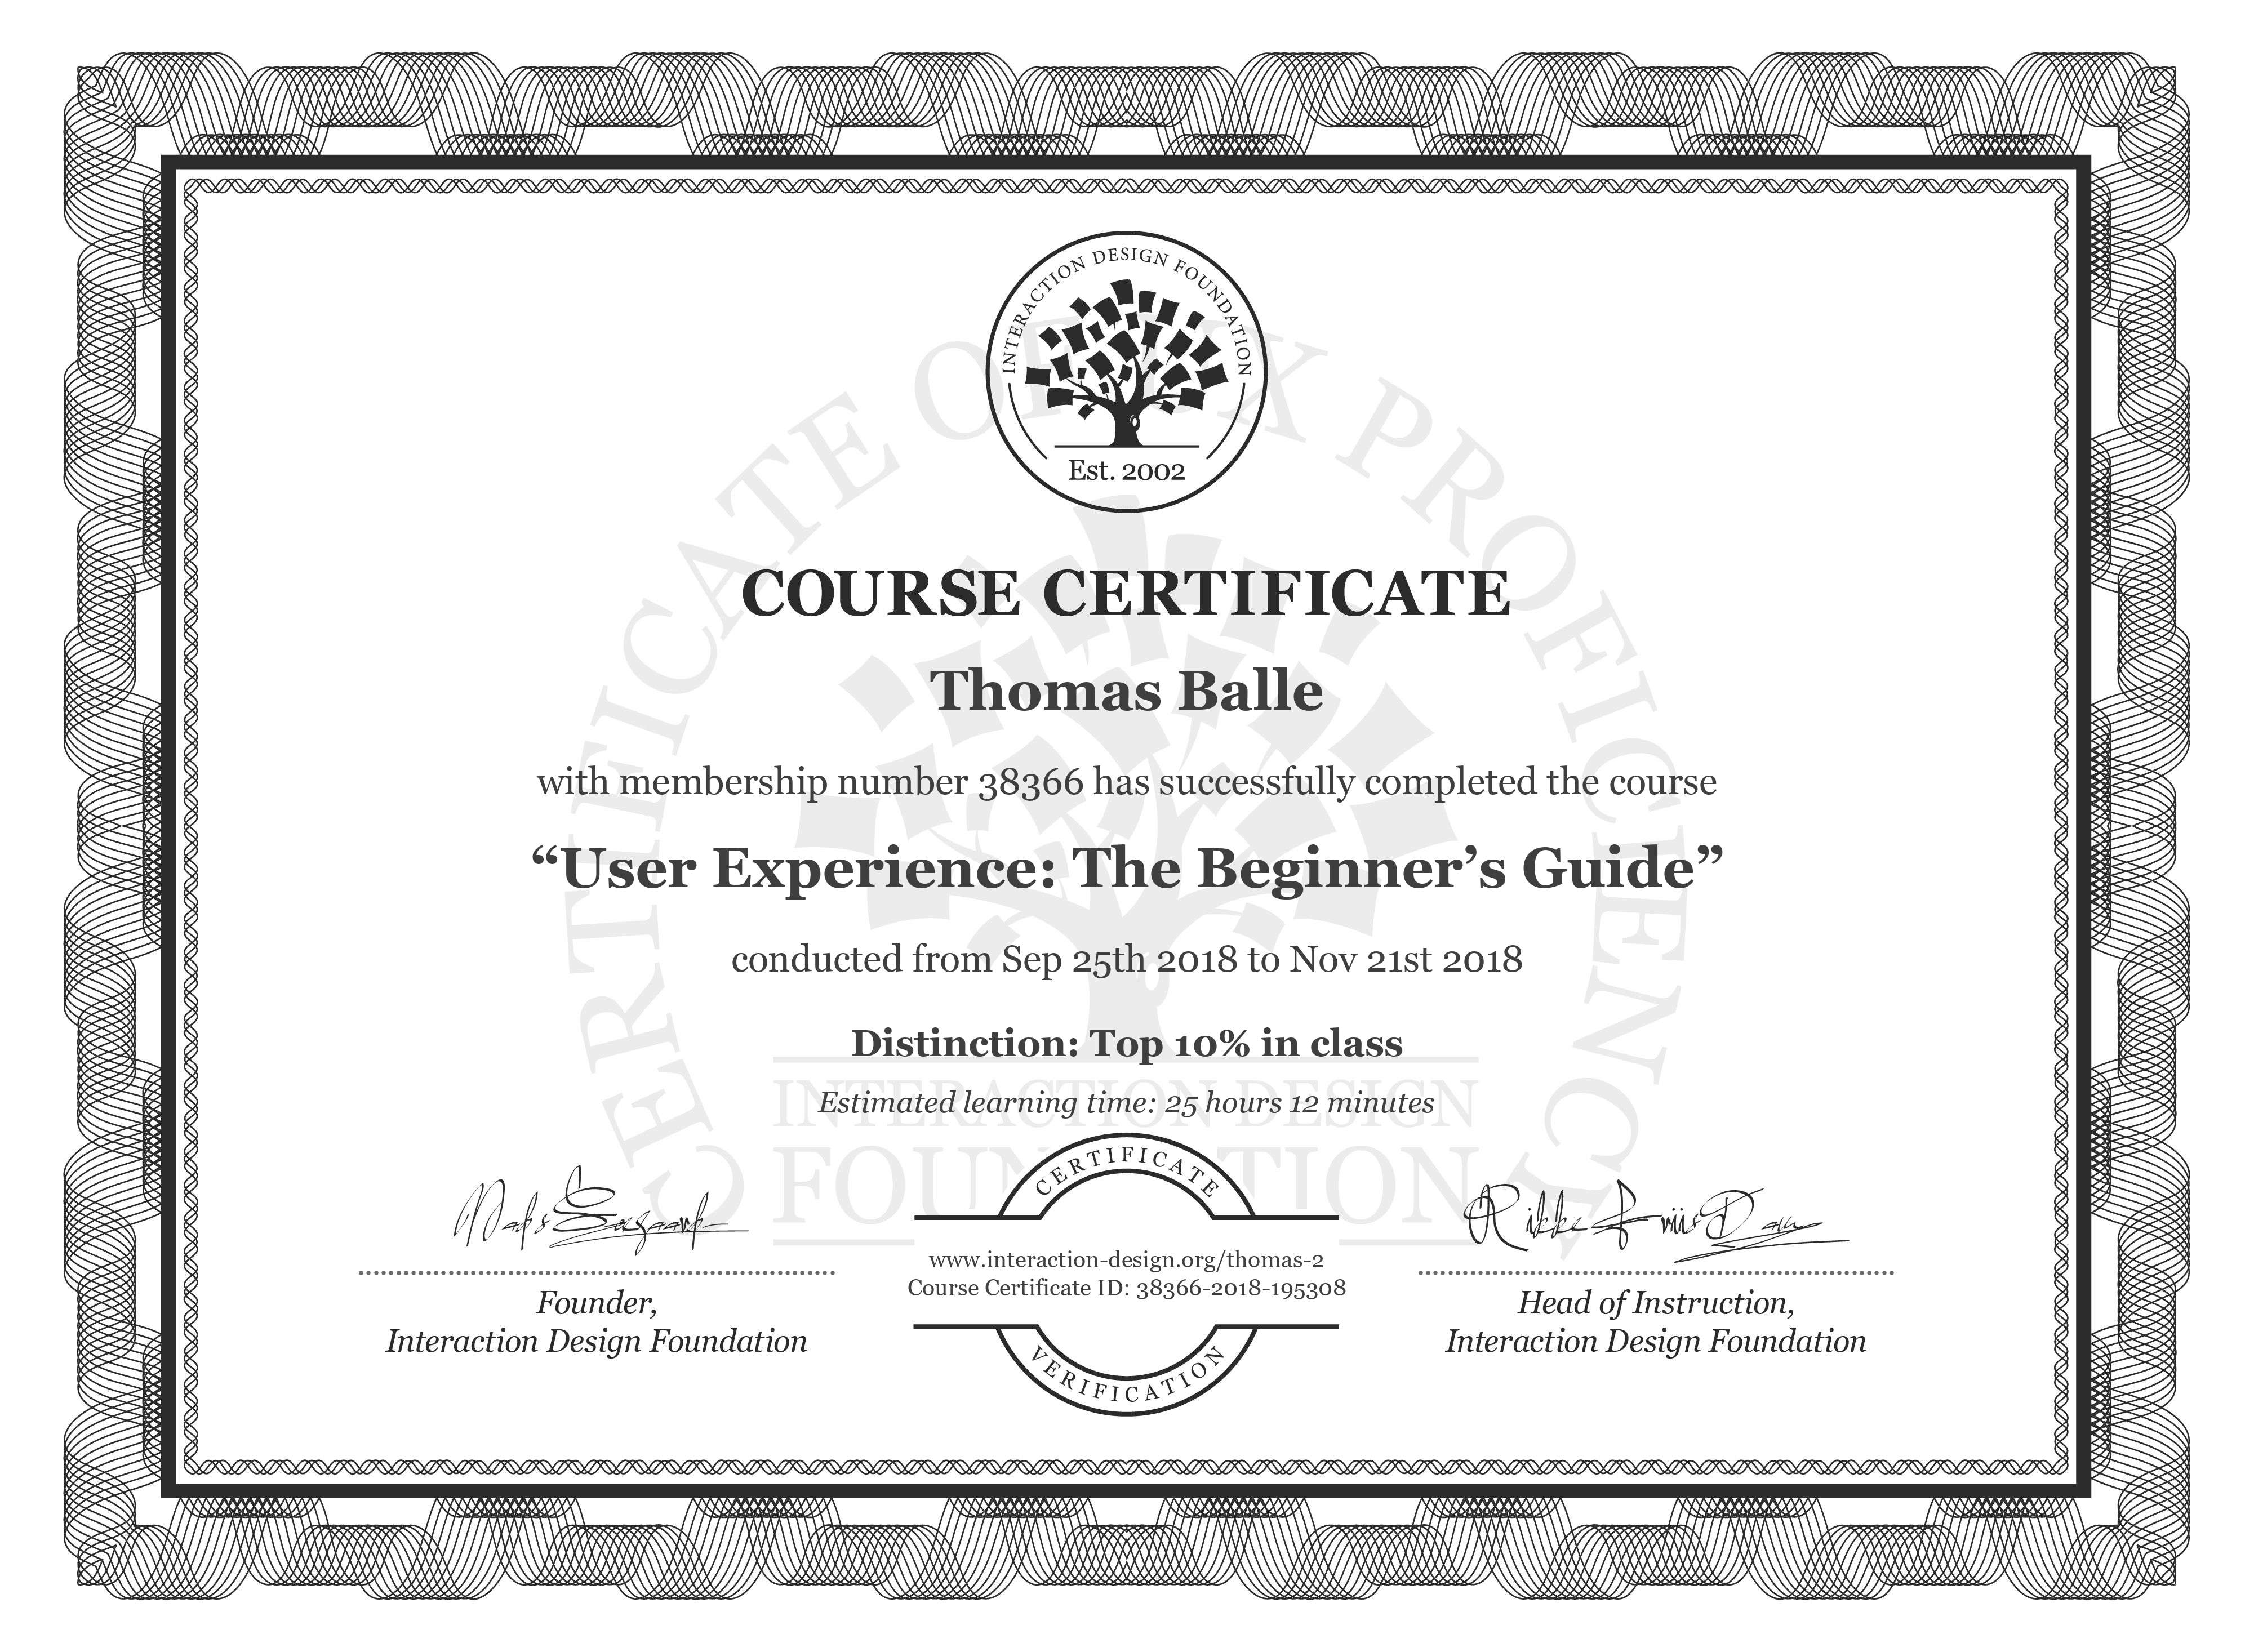 Thomas Balle: Course Certificate - Become a UX Designer from Scratch